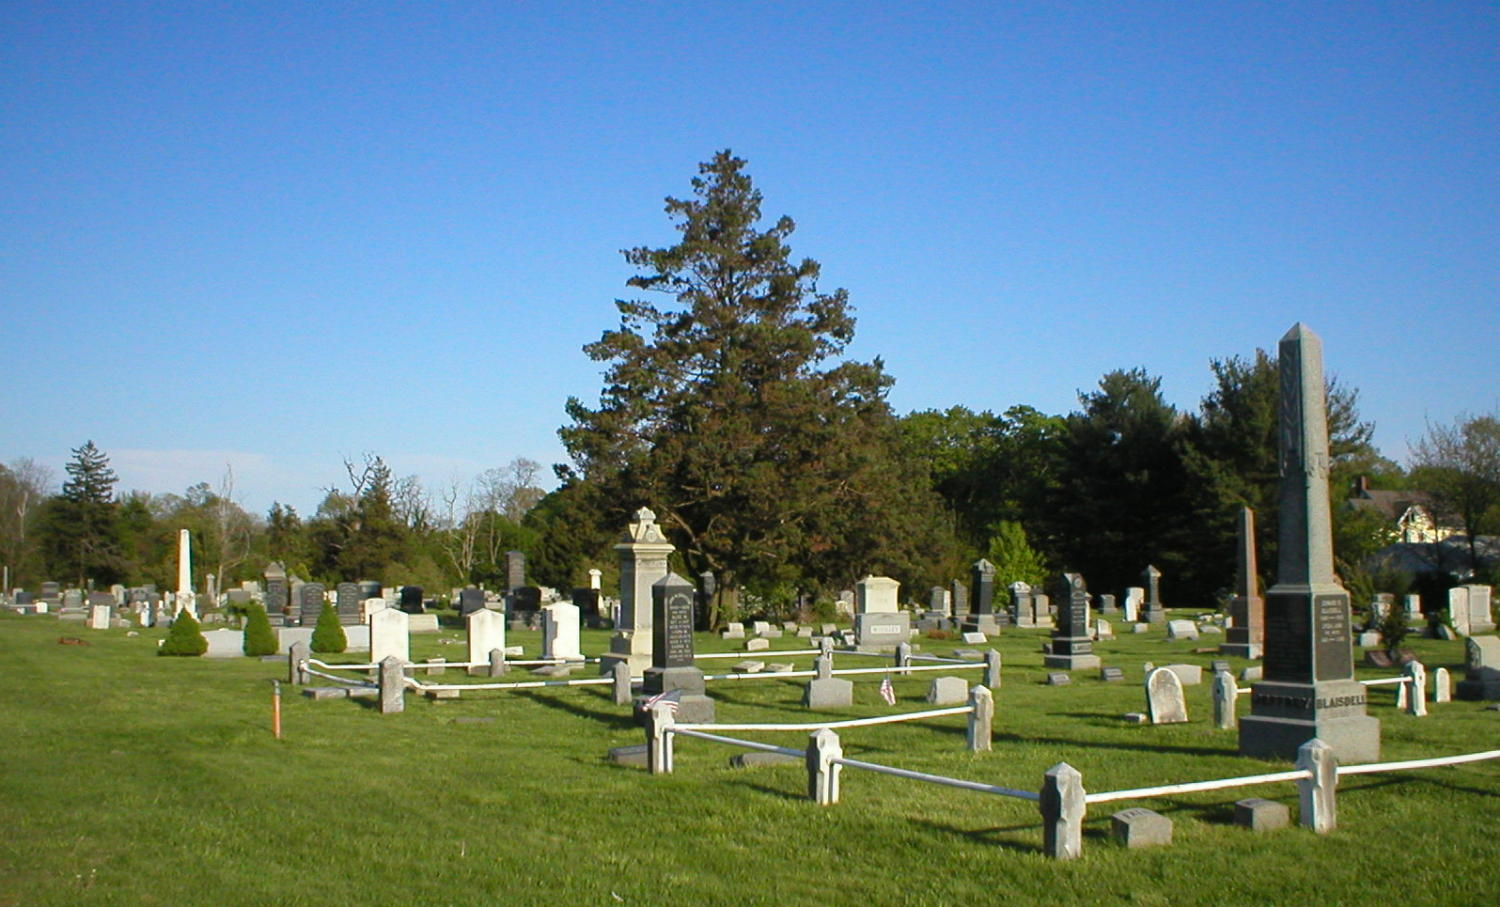 Old First Methodist Church Cemetery